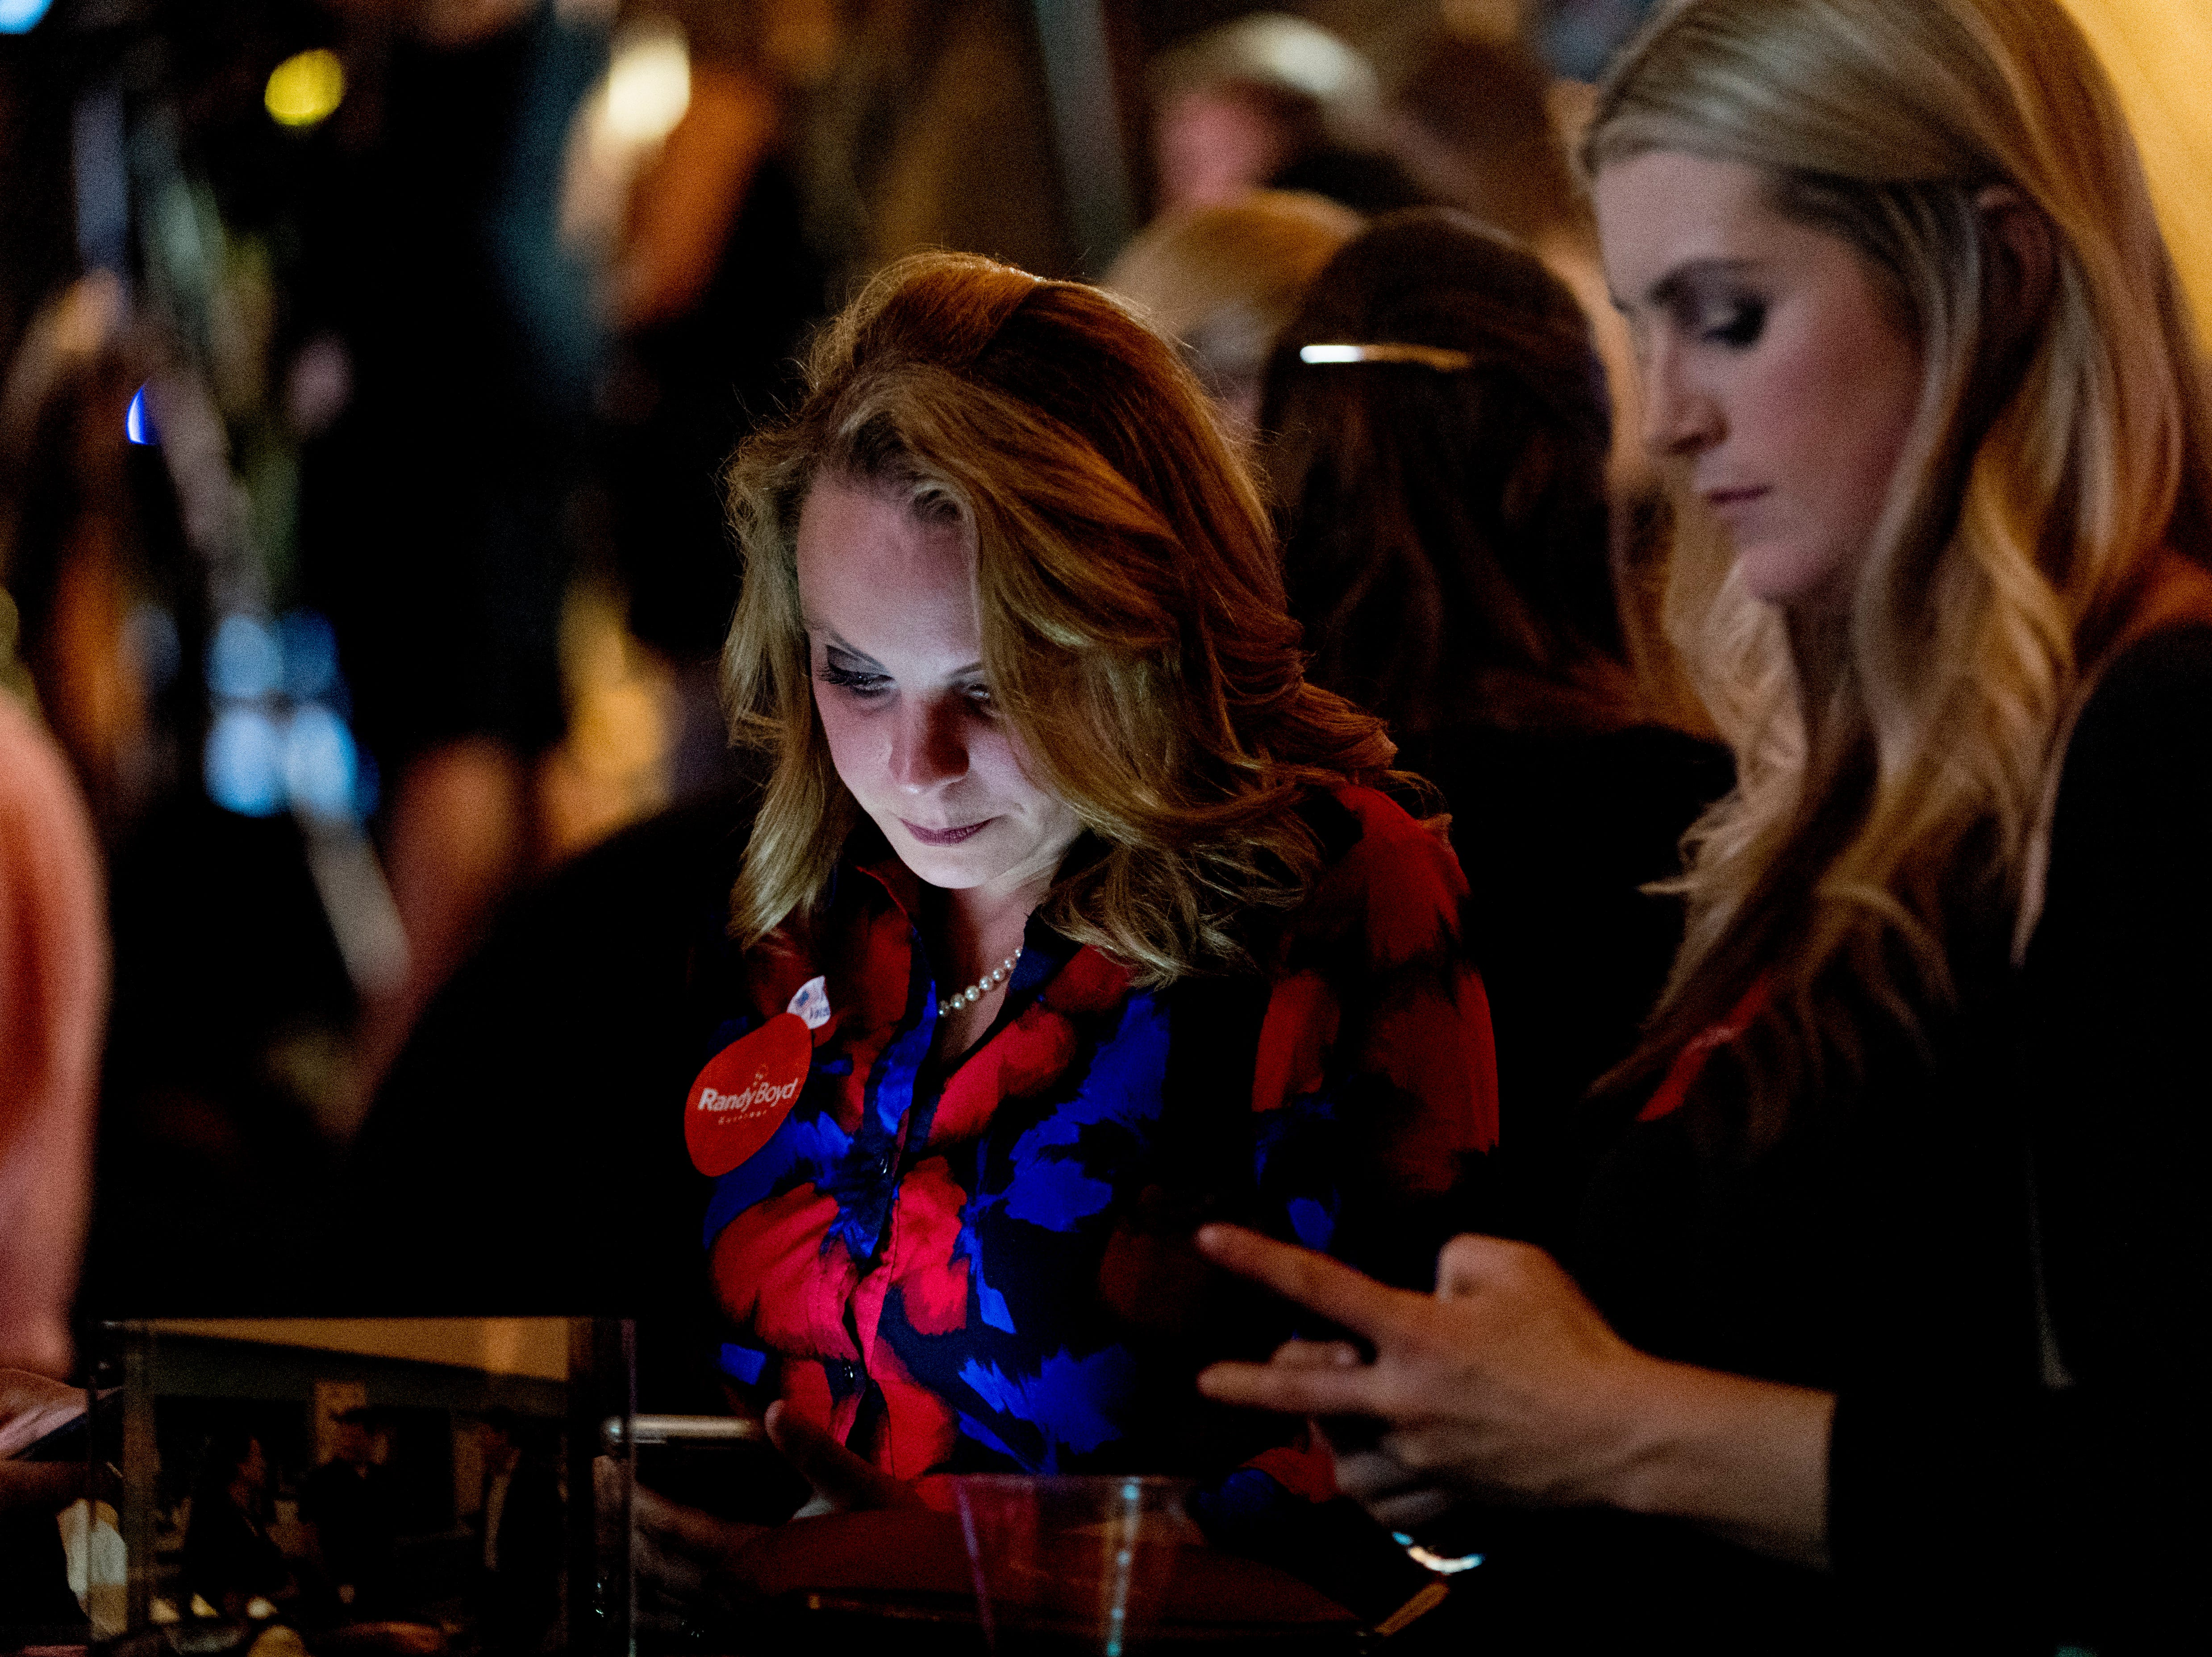 Liz Burelson, left, and Alexis Bell, of Nashville, watch the poll numbers on their phones at the Randy Boyd for Governor watch party at Jackson Terminal in Knoxville, Tennessee on Thursday, August 2, 2018.